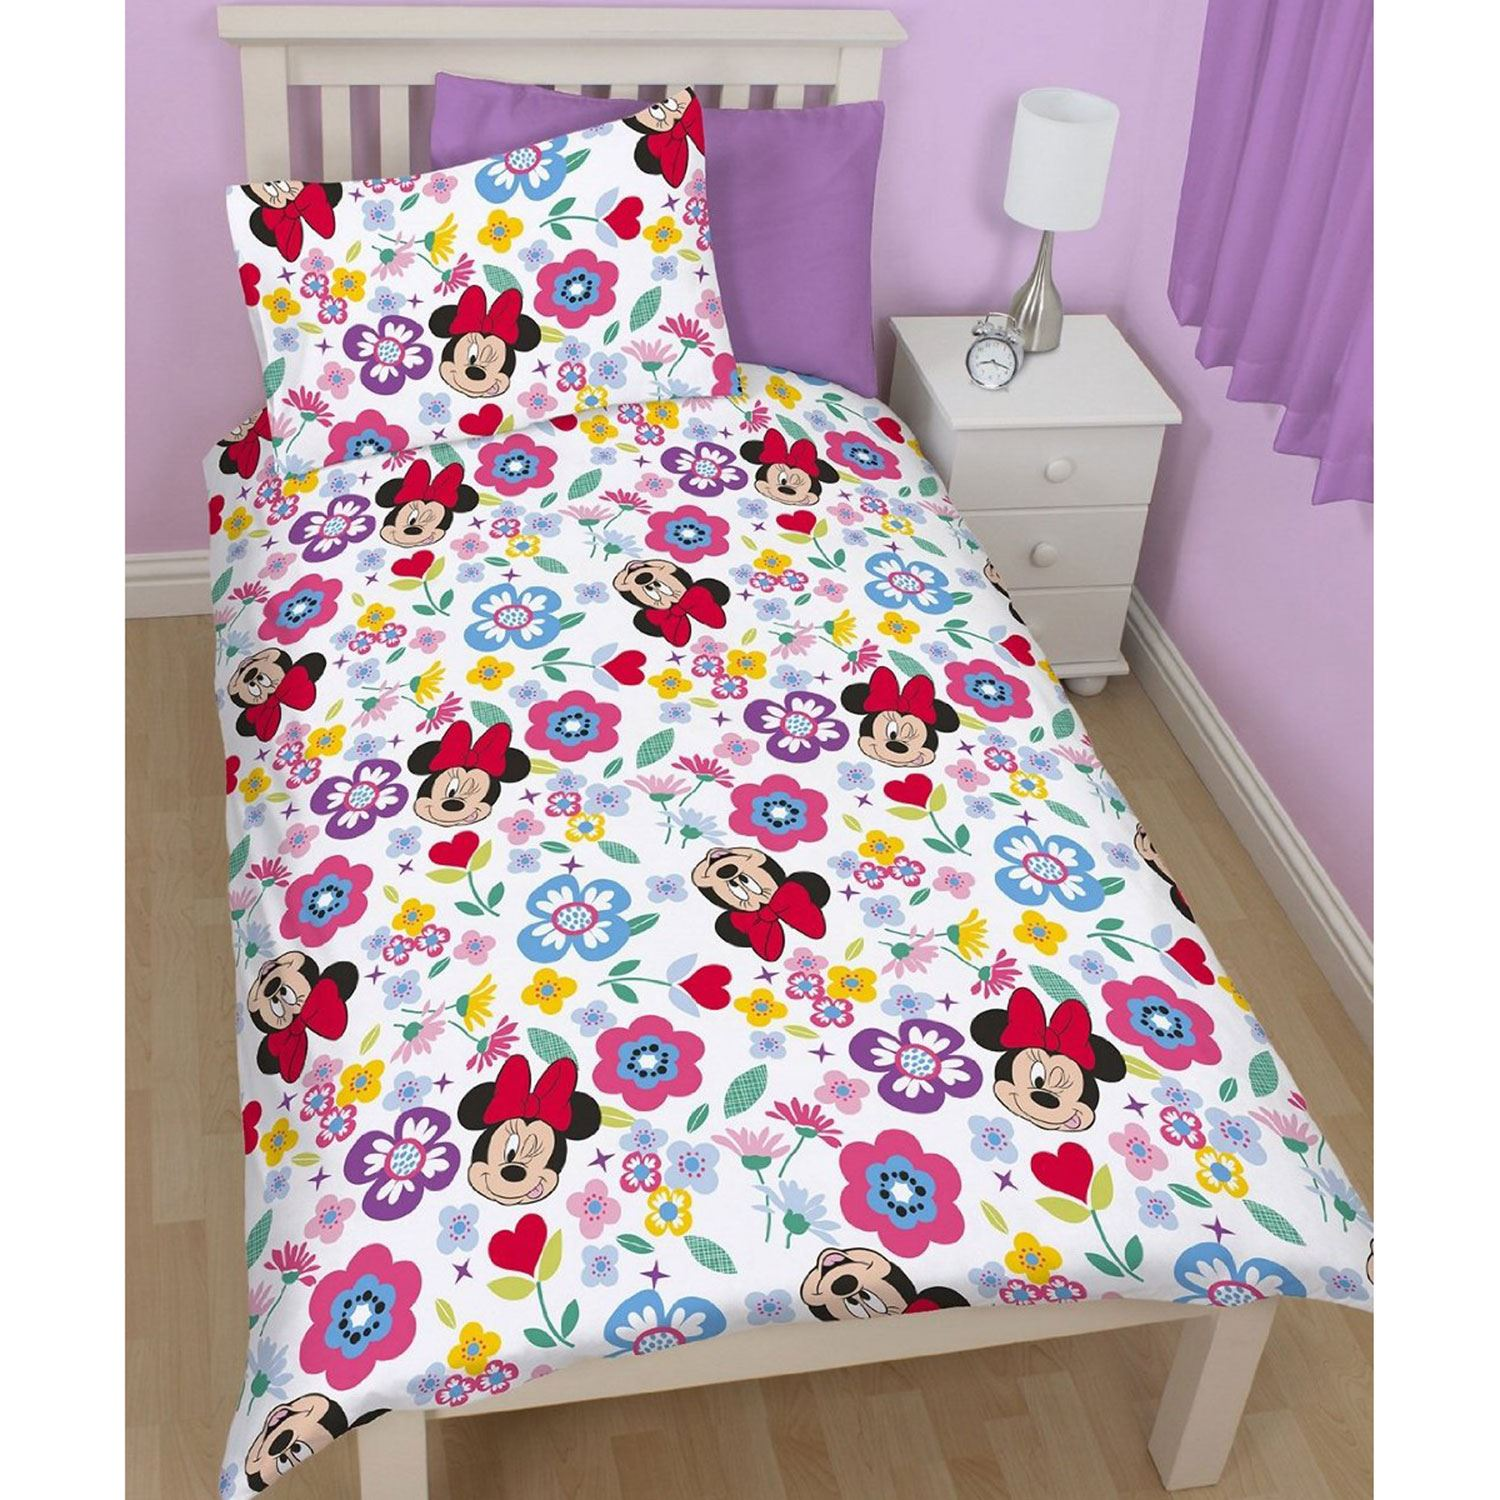 MINNIE-MOUSE-DUVET-COVERS-KIDS-GIRLS-BEDDING-SINGLE-DOUBLE-JUNIOR thumbnail 28